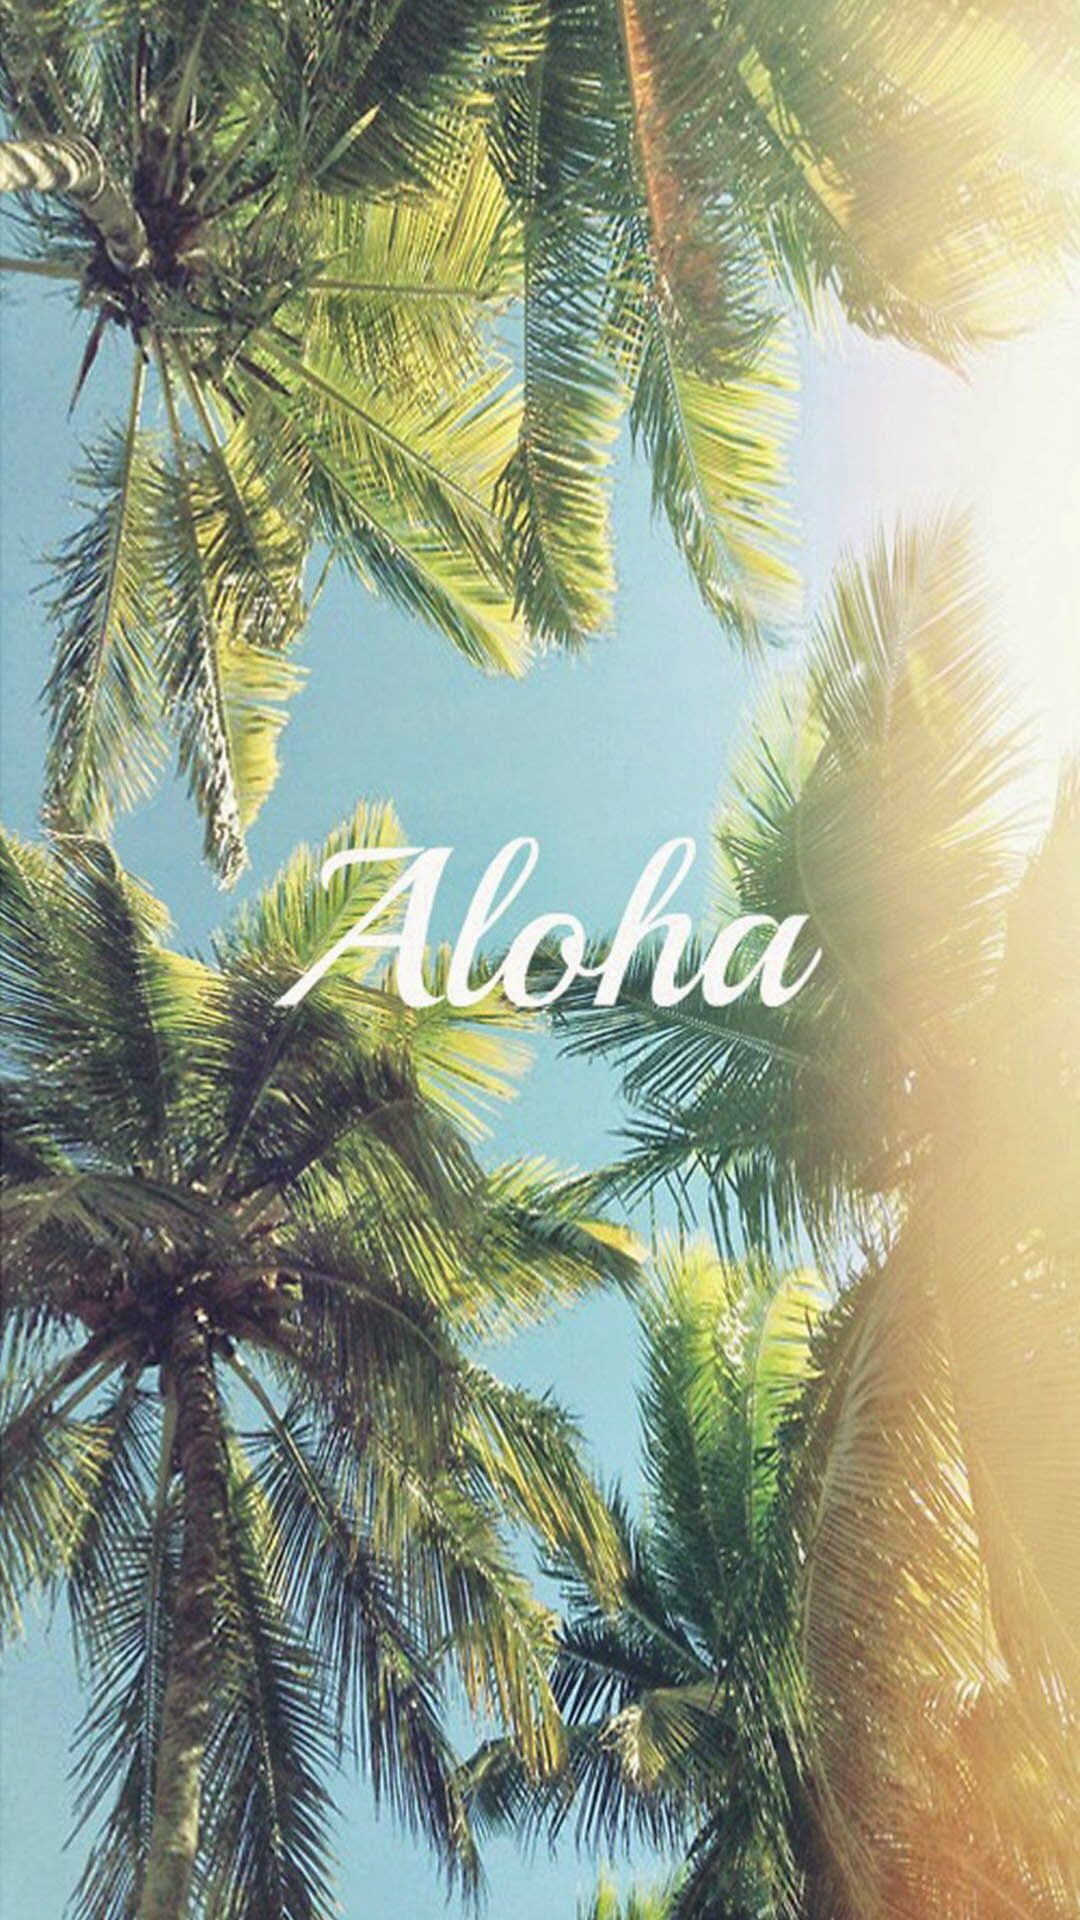 Hd wallpaper tumblr iphone - Download Aloha Palm Trees Iphone 6 Plus Hd Wallpaper